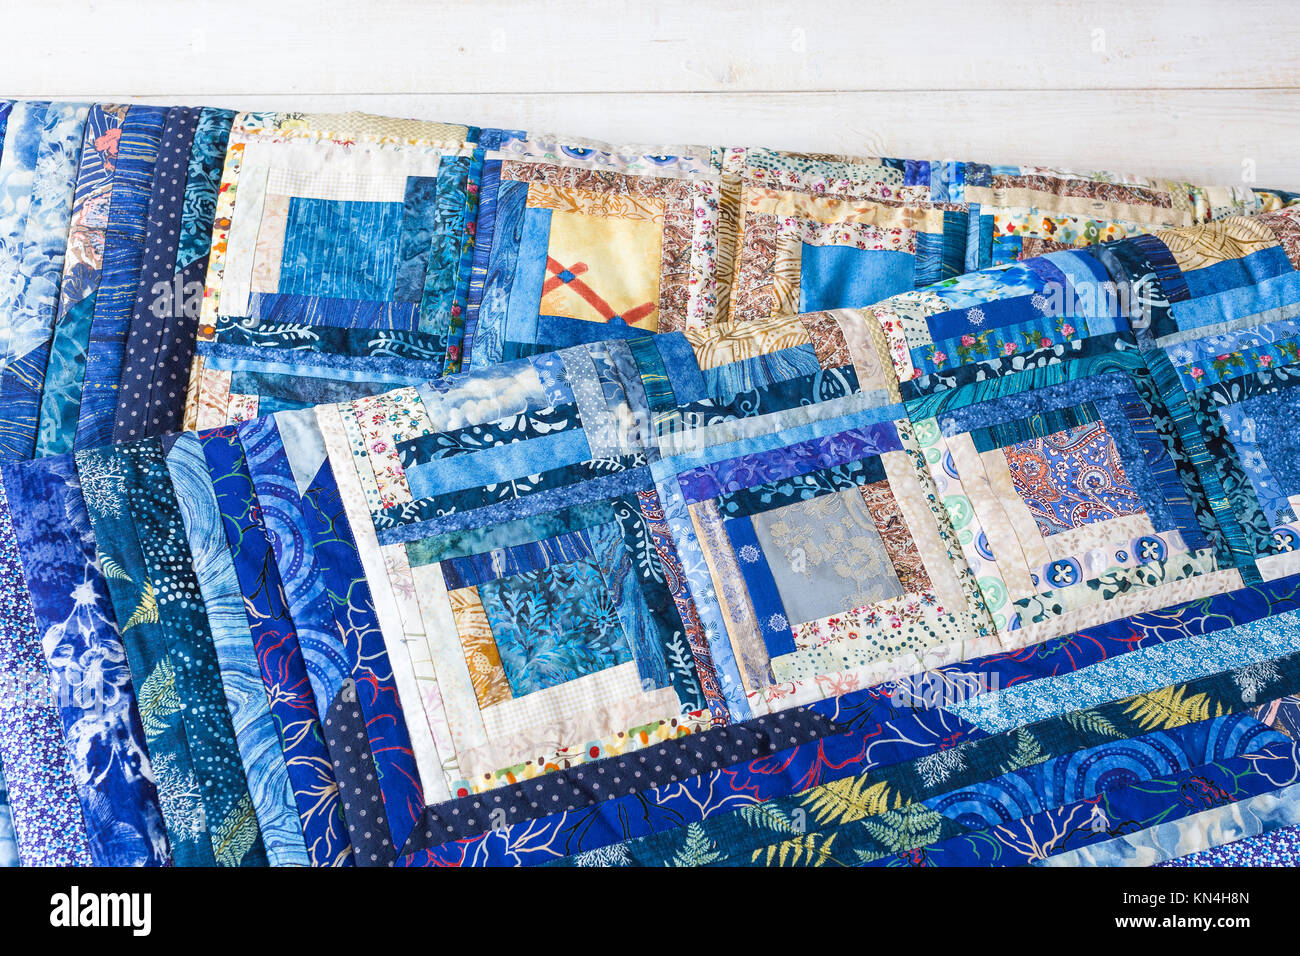 cosiness, comfort, design, homemade, quilting, hobby concept - warm cosy blankets made of colorful textile pieces - Stock Image